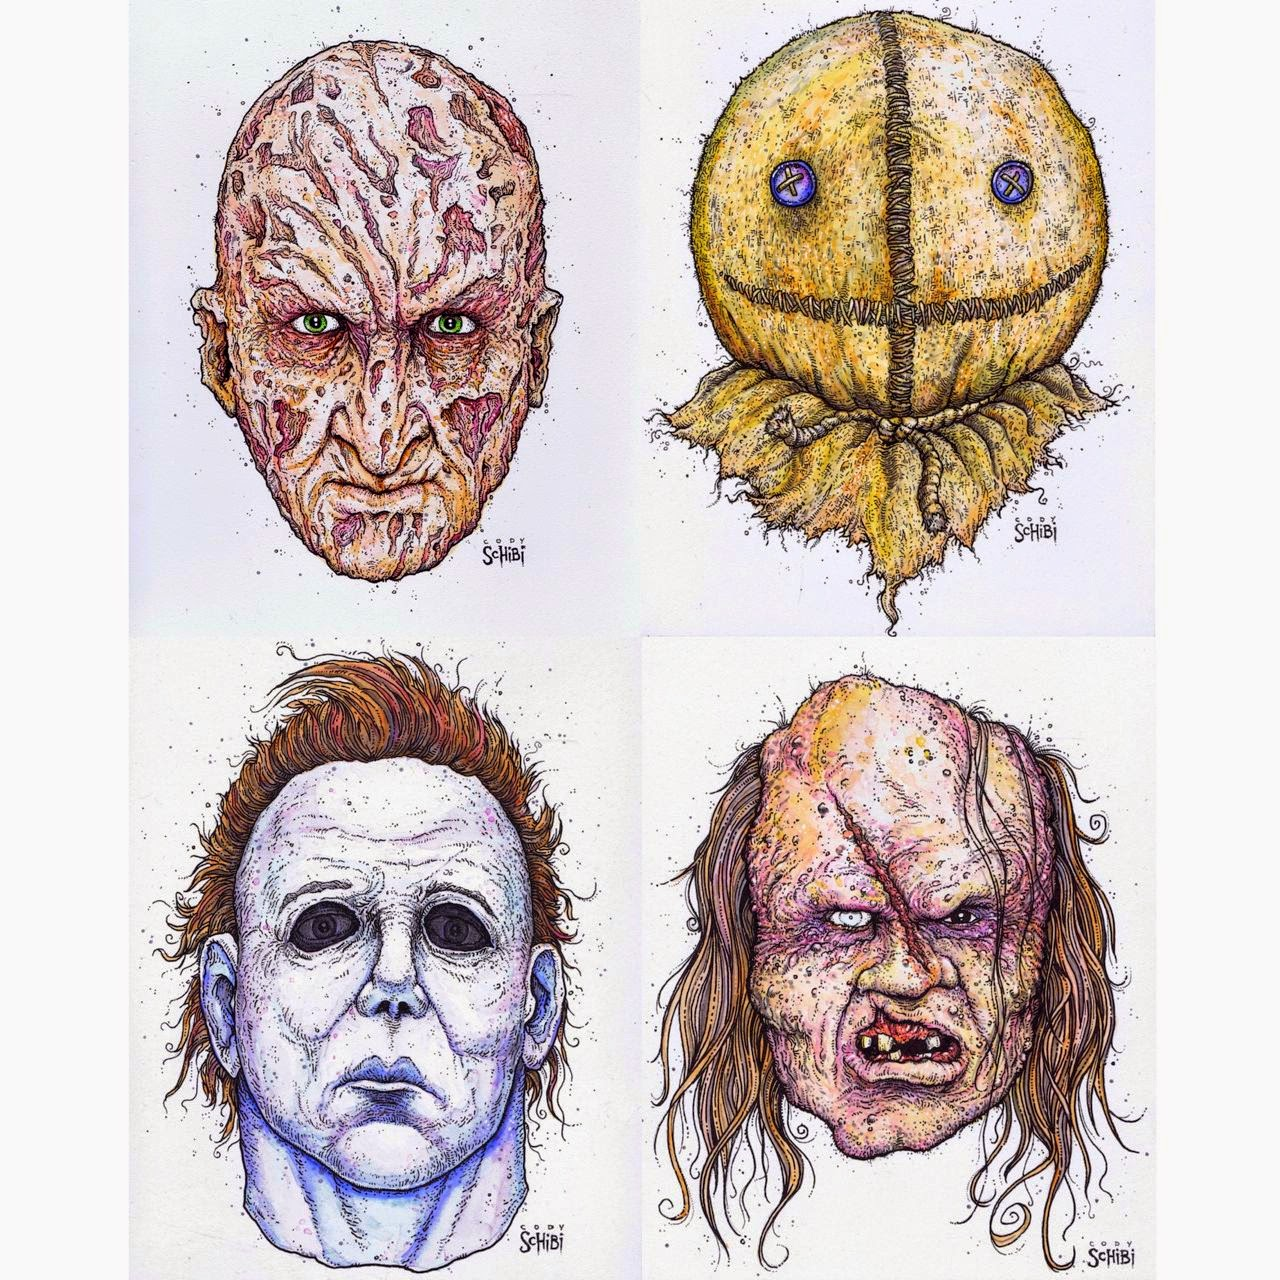 Draw Home Design Online Drawing A Blank The Art Of Cody Schibi Icons Of Horror